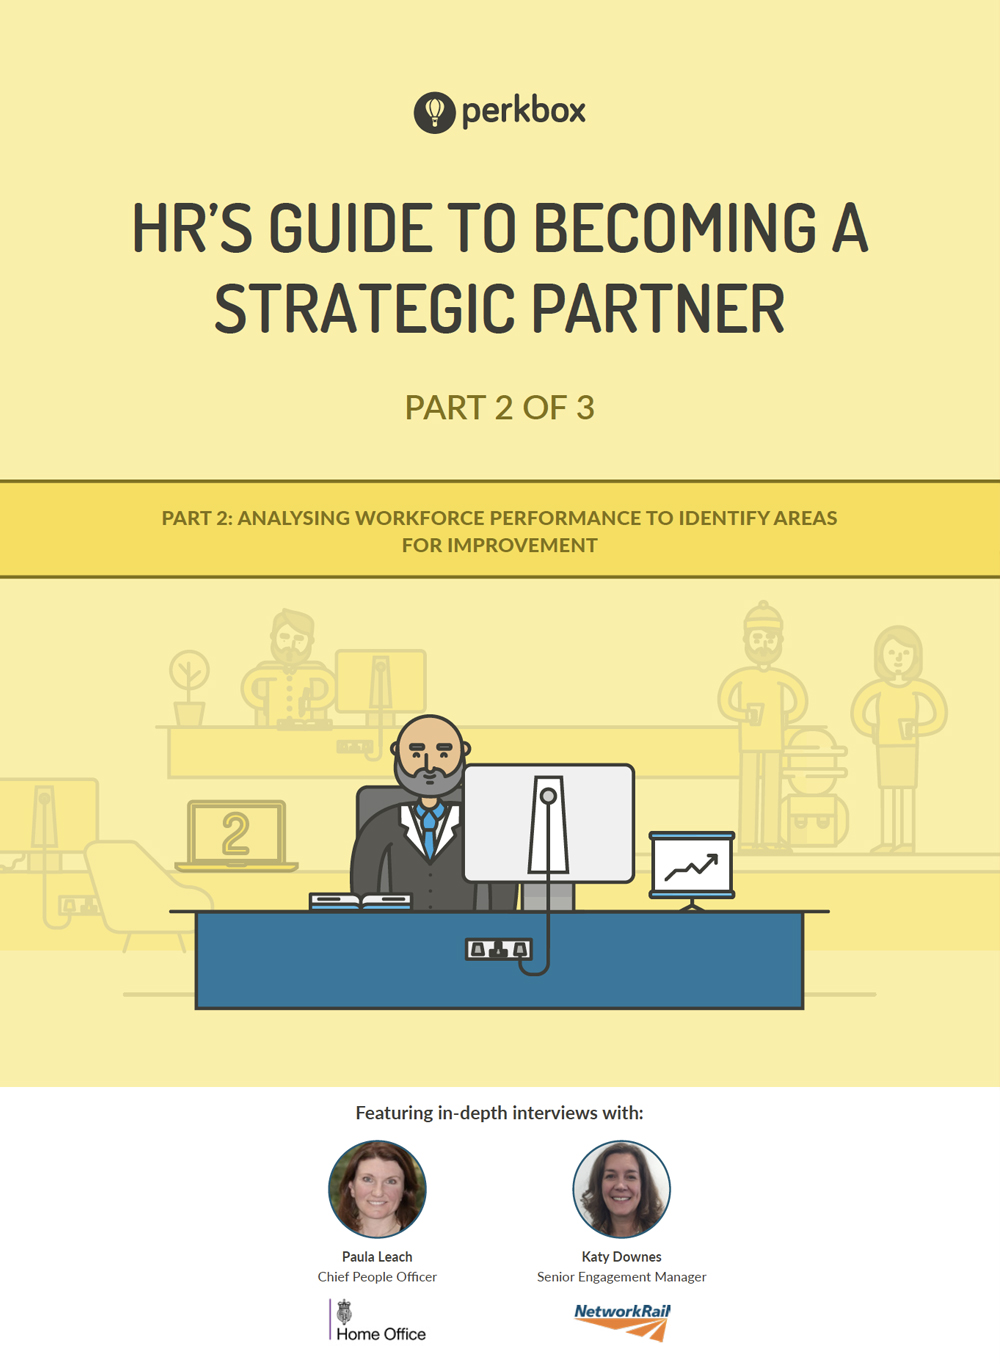 HR's Guide to Becoming a Strategic Partner - Part 2